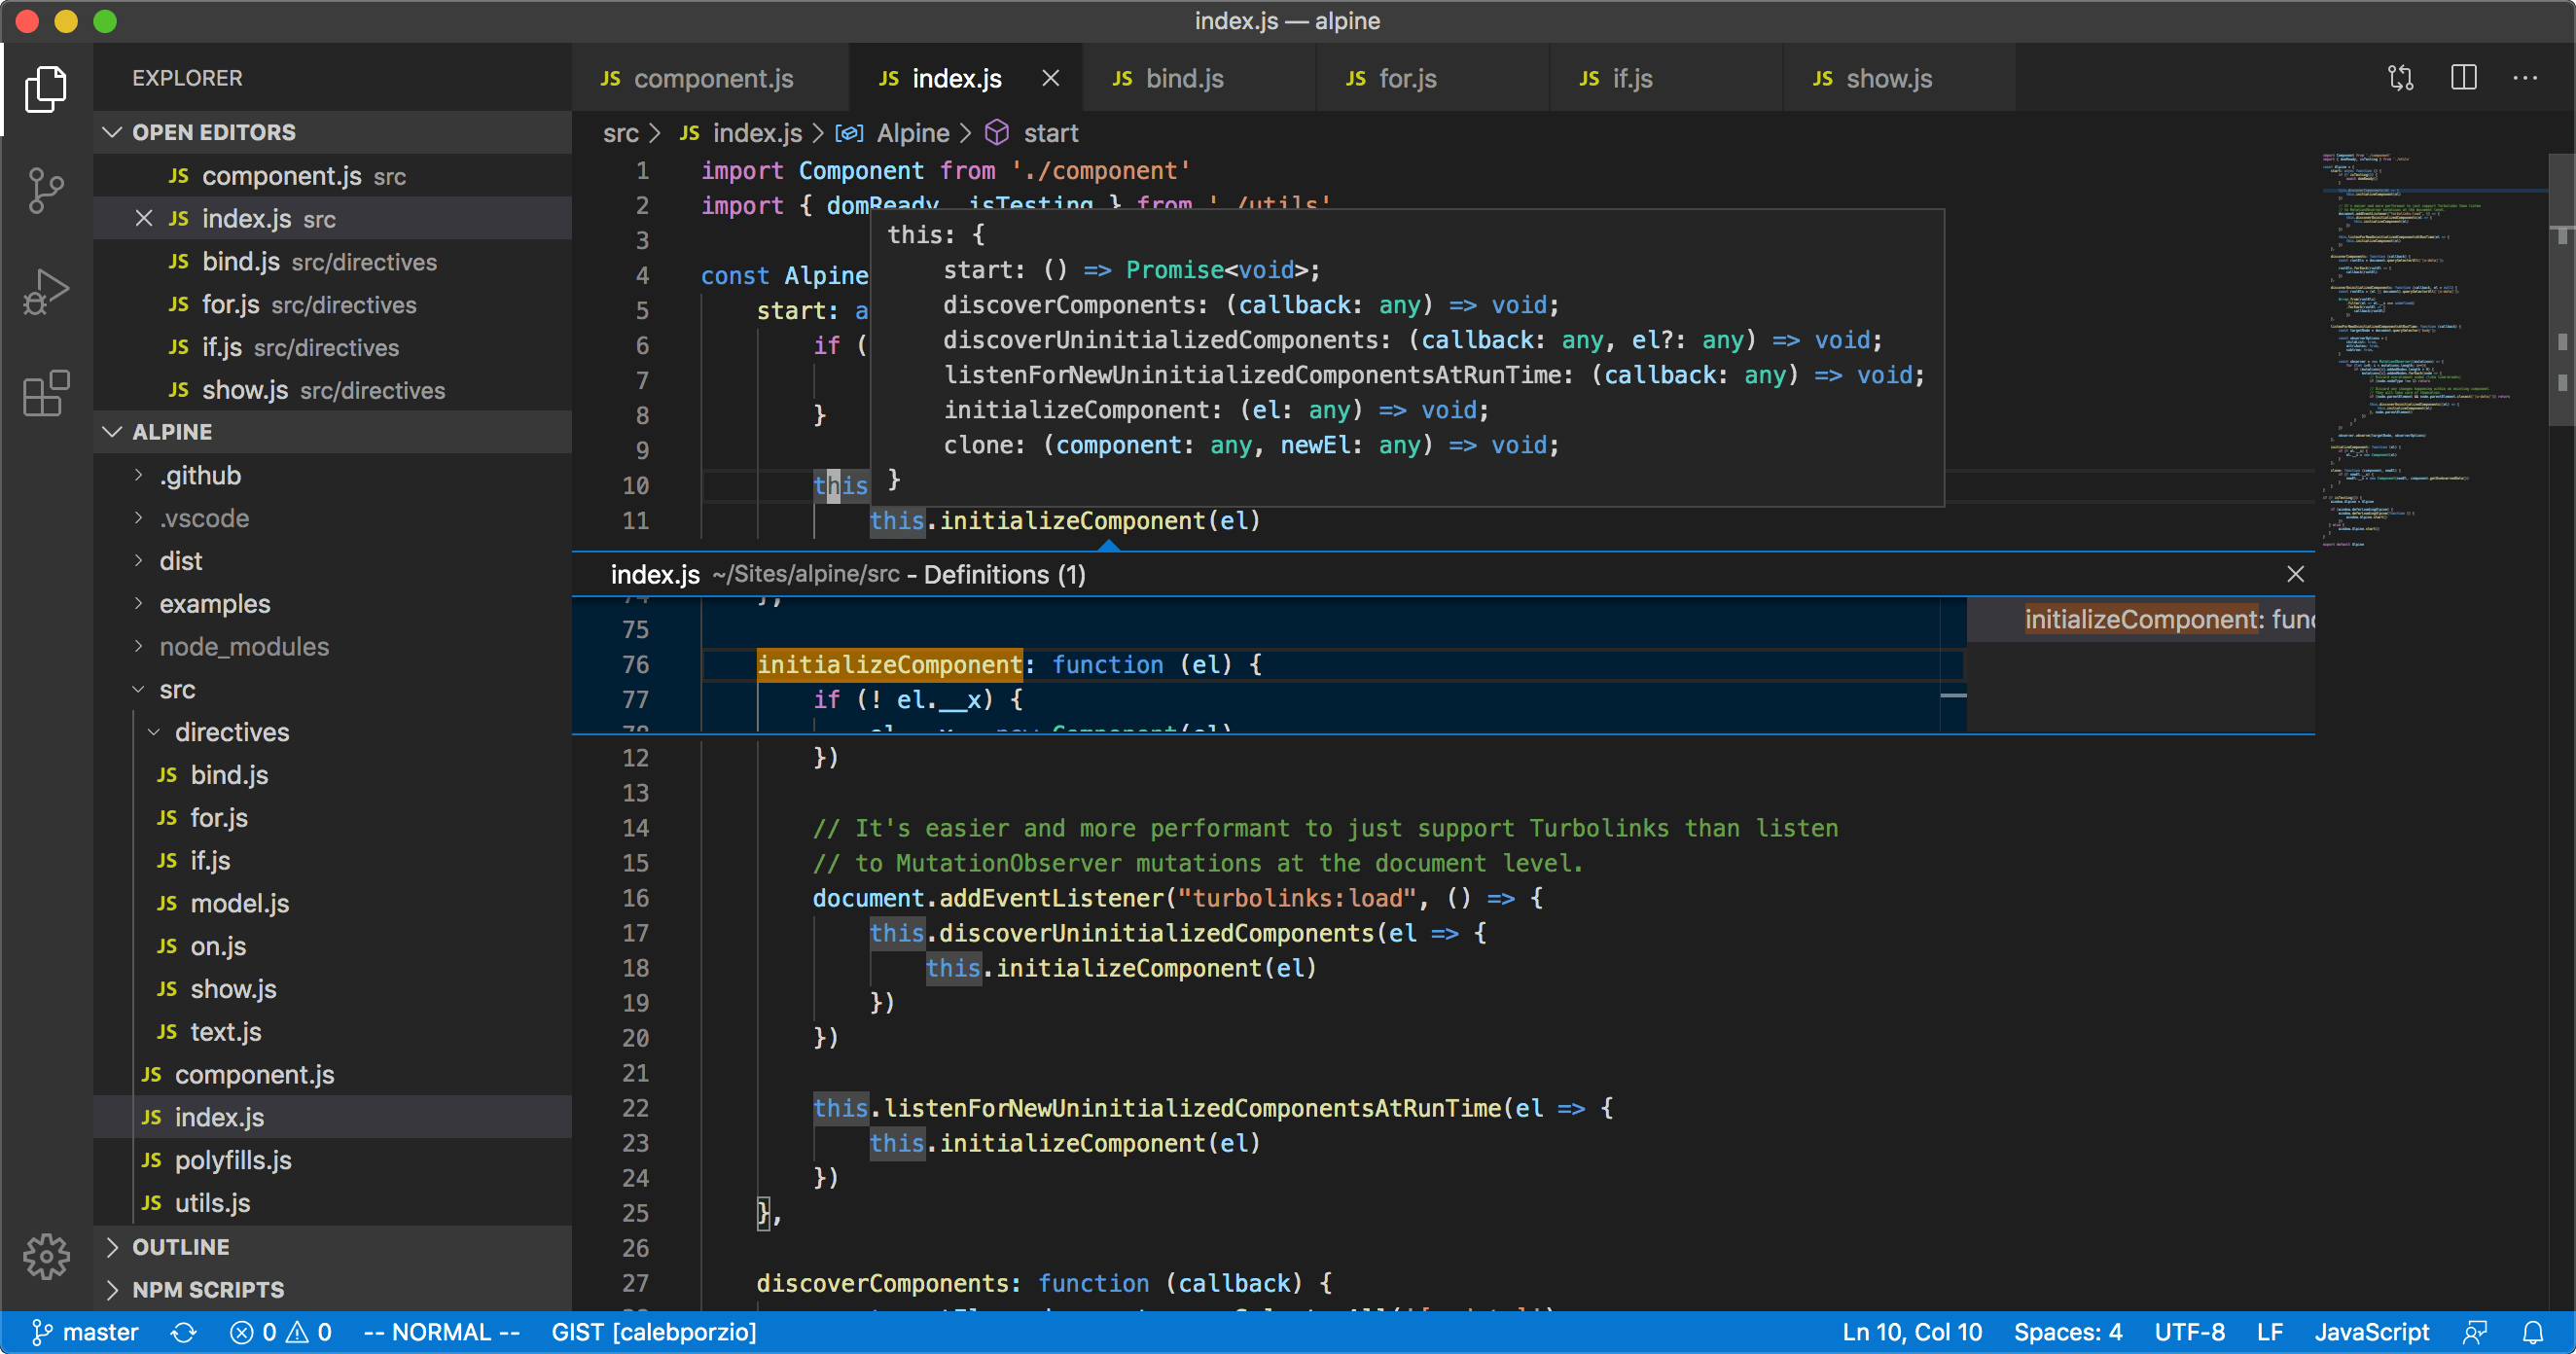 VS Code after a clean install (ugly and noisy)